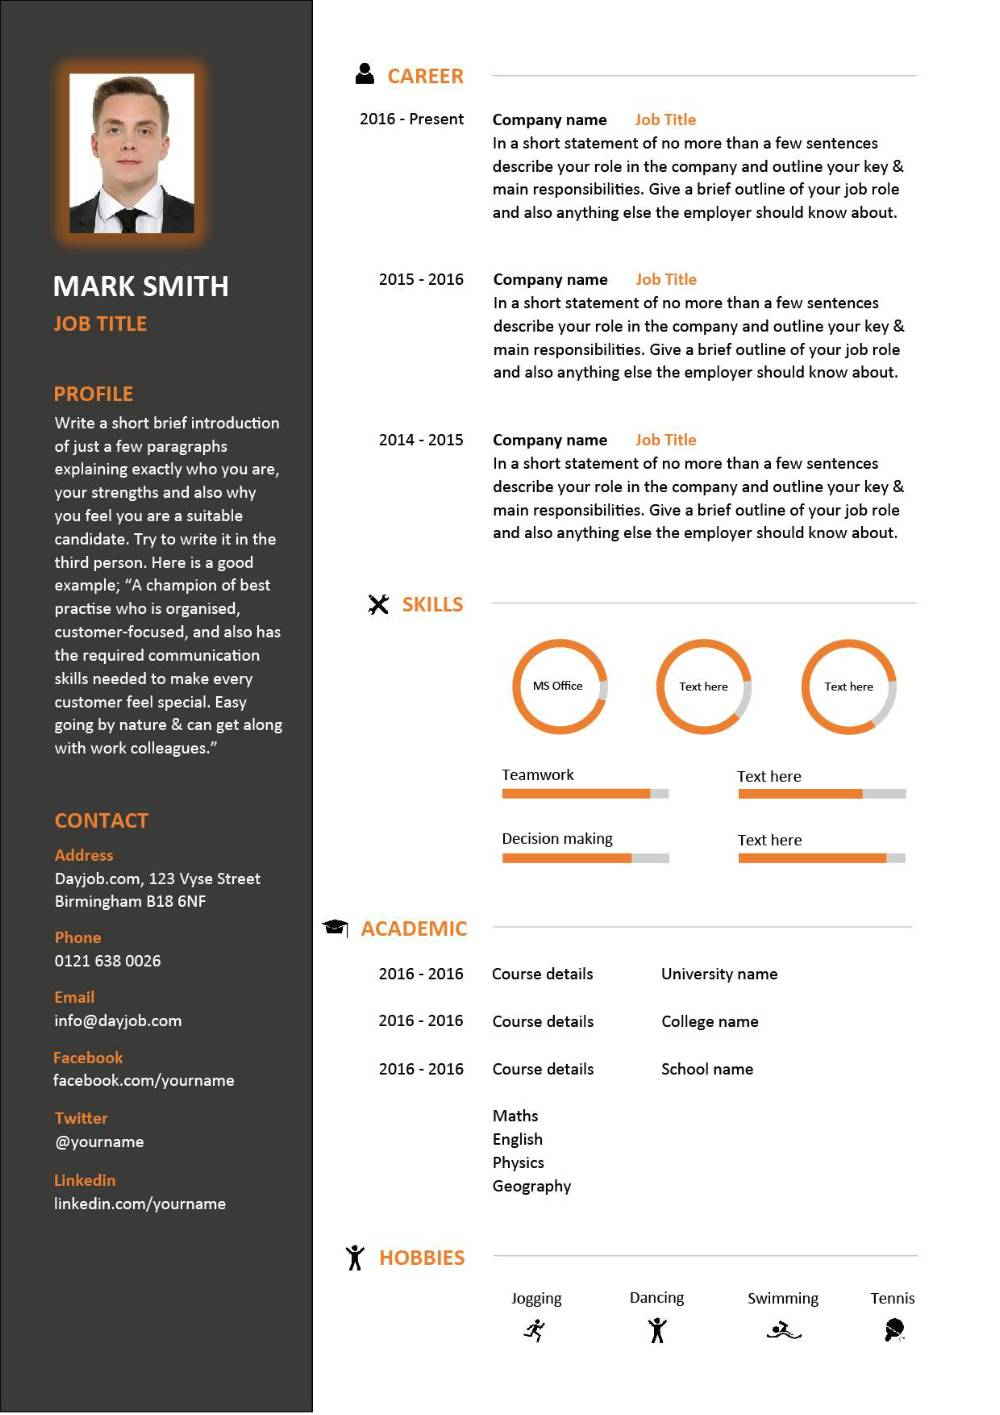 Free downloadable CV template examples career advice how to write a CV curriculum vitae library